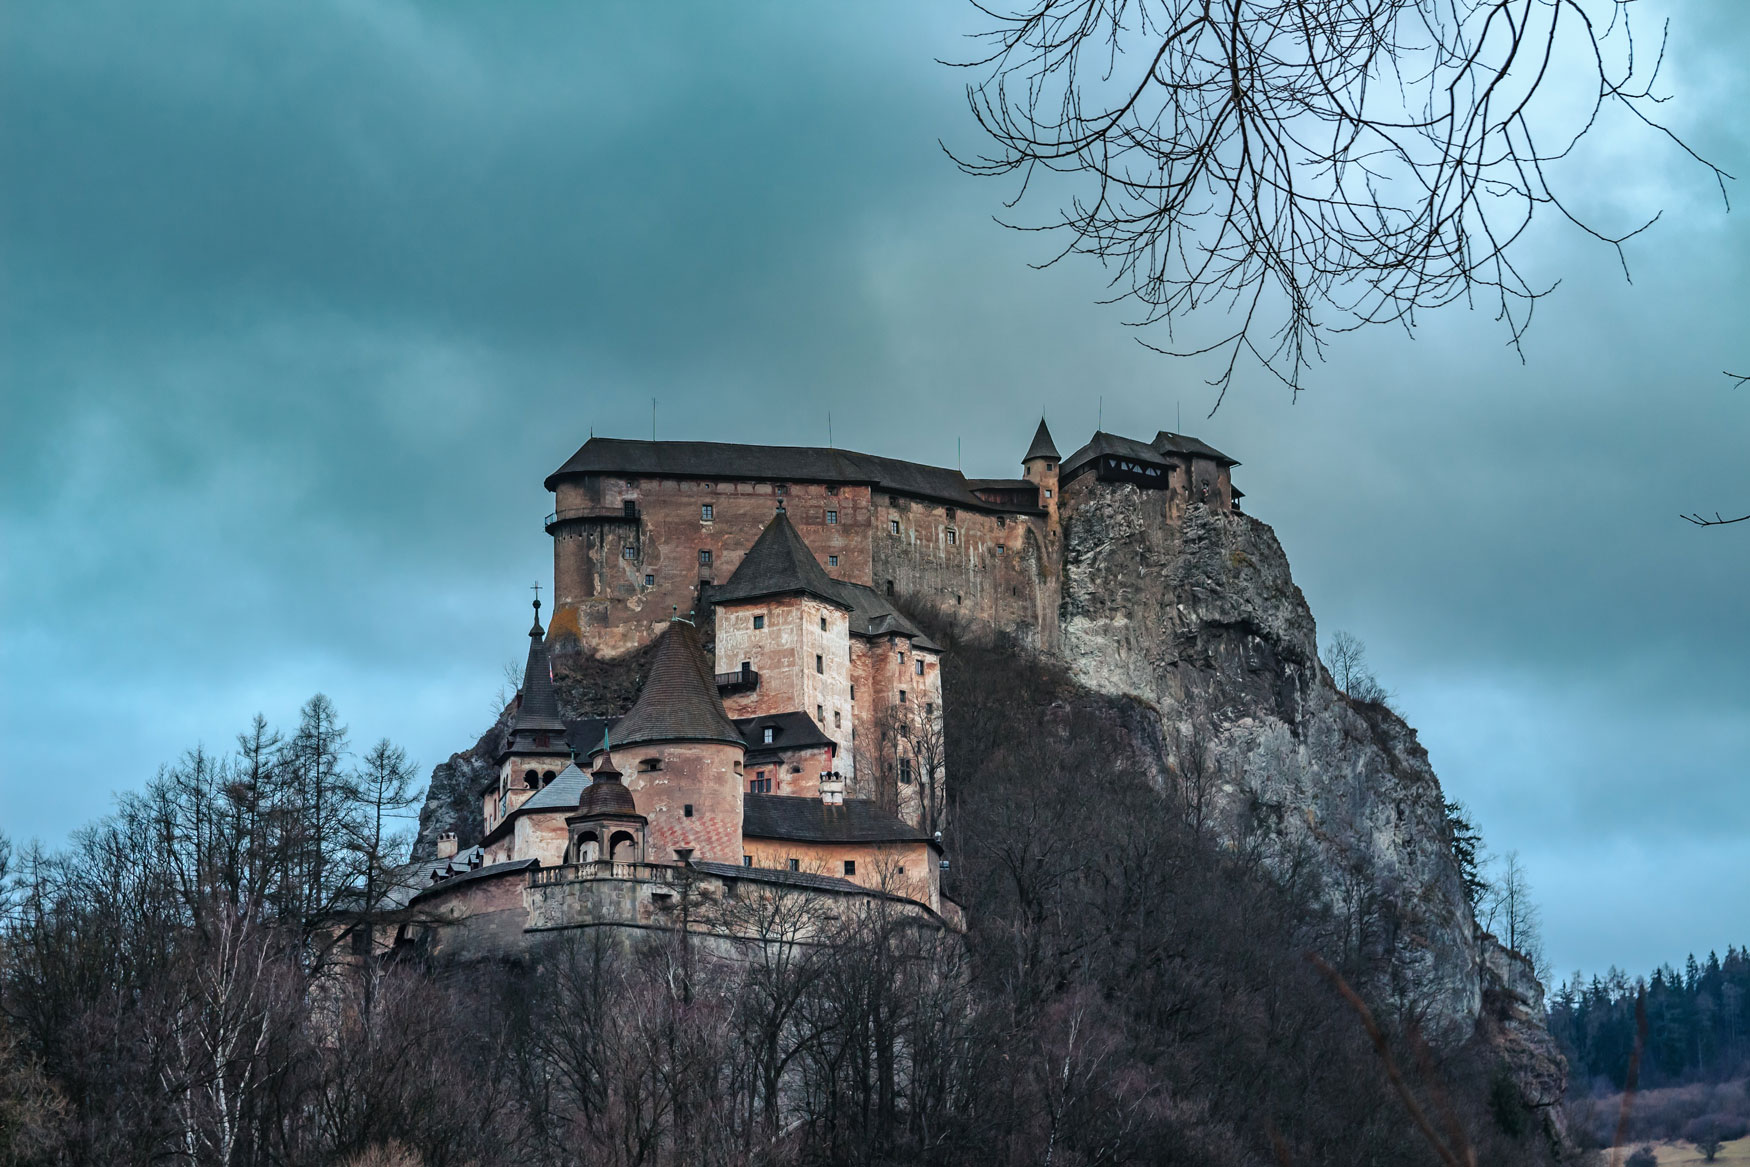 What to do in Orava region? Visit Orava Castle with an Audio guide!